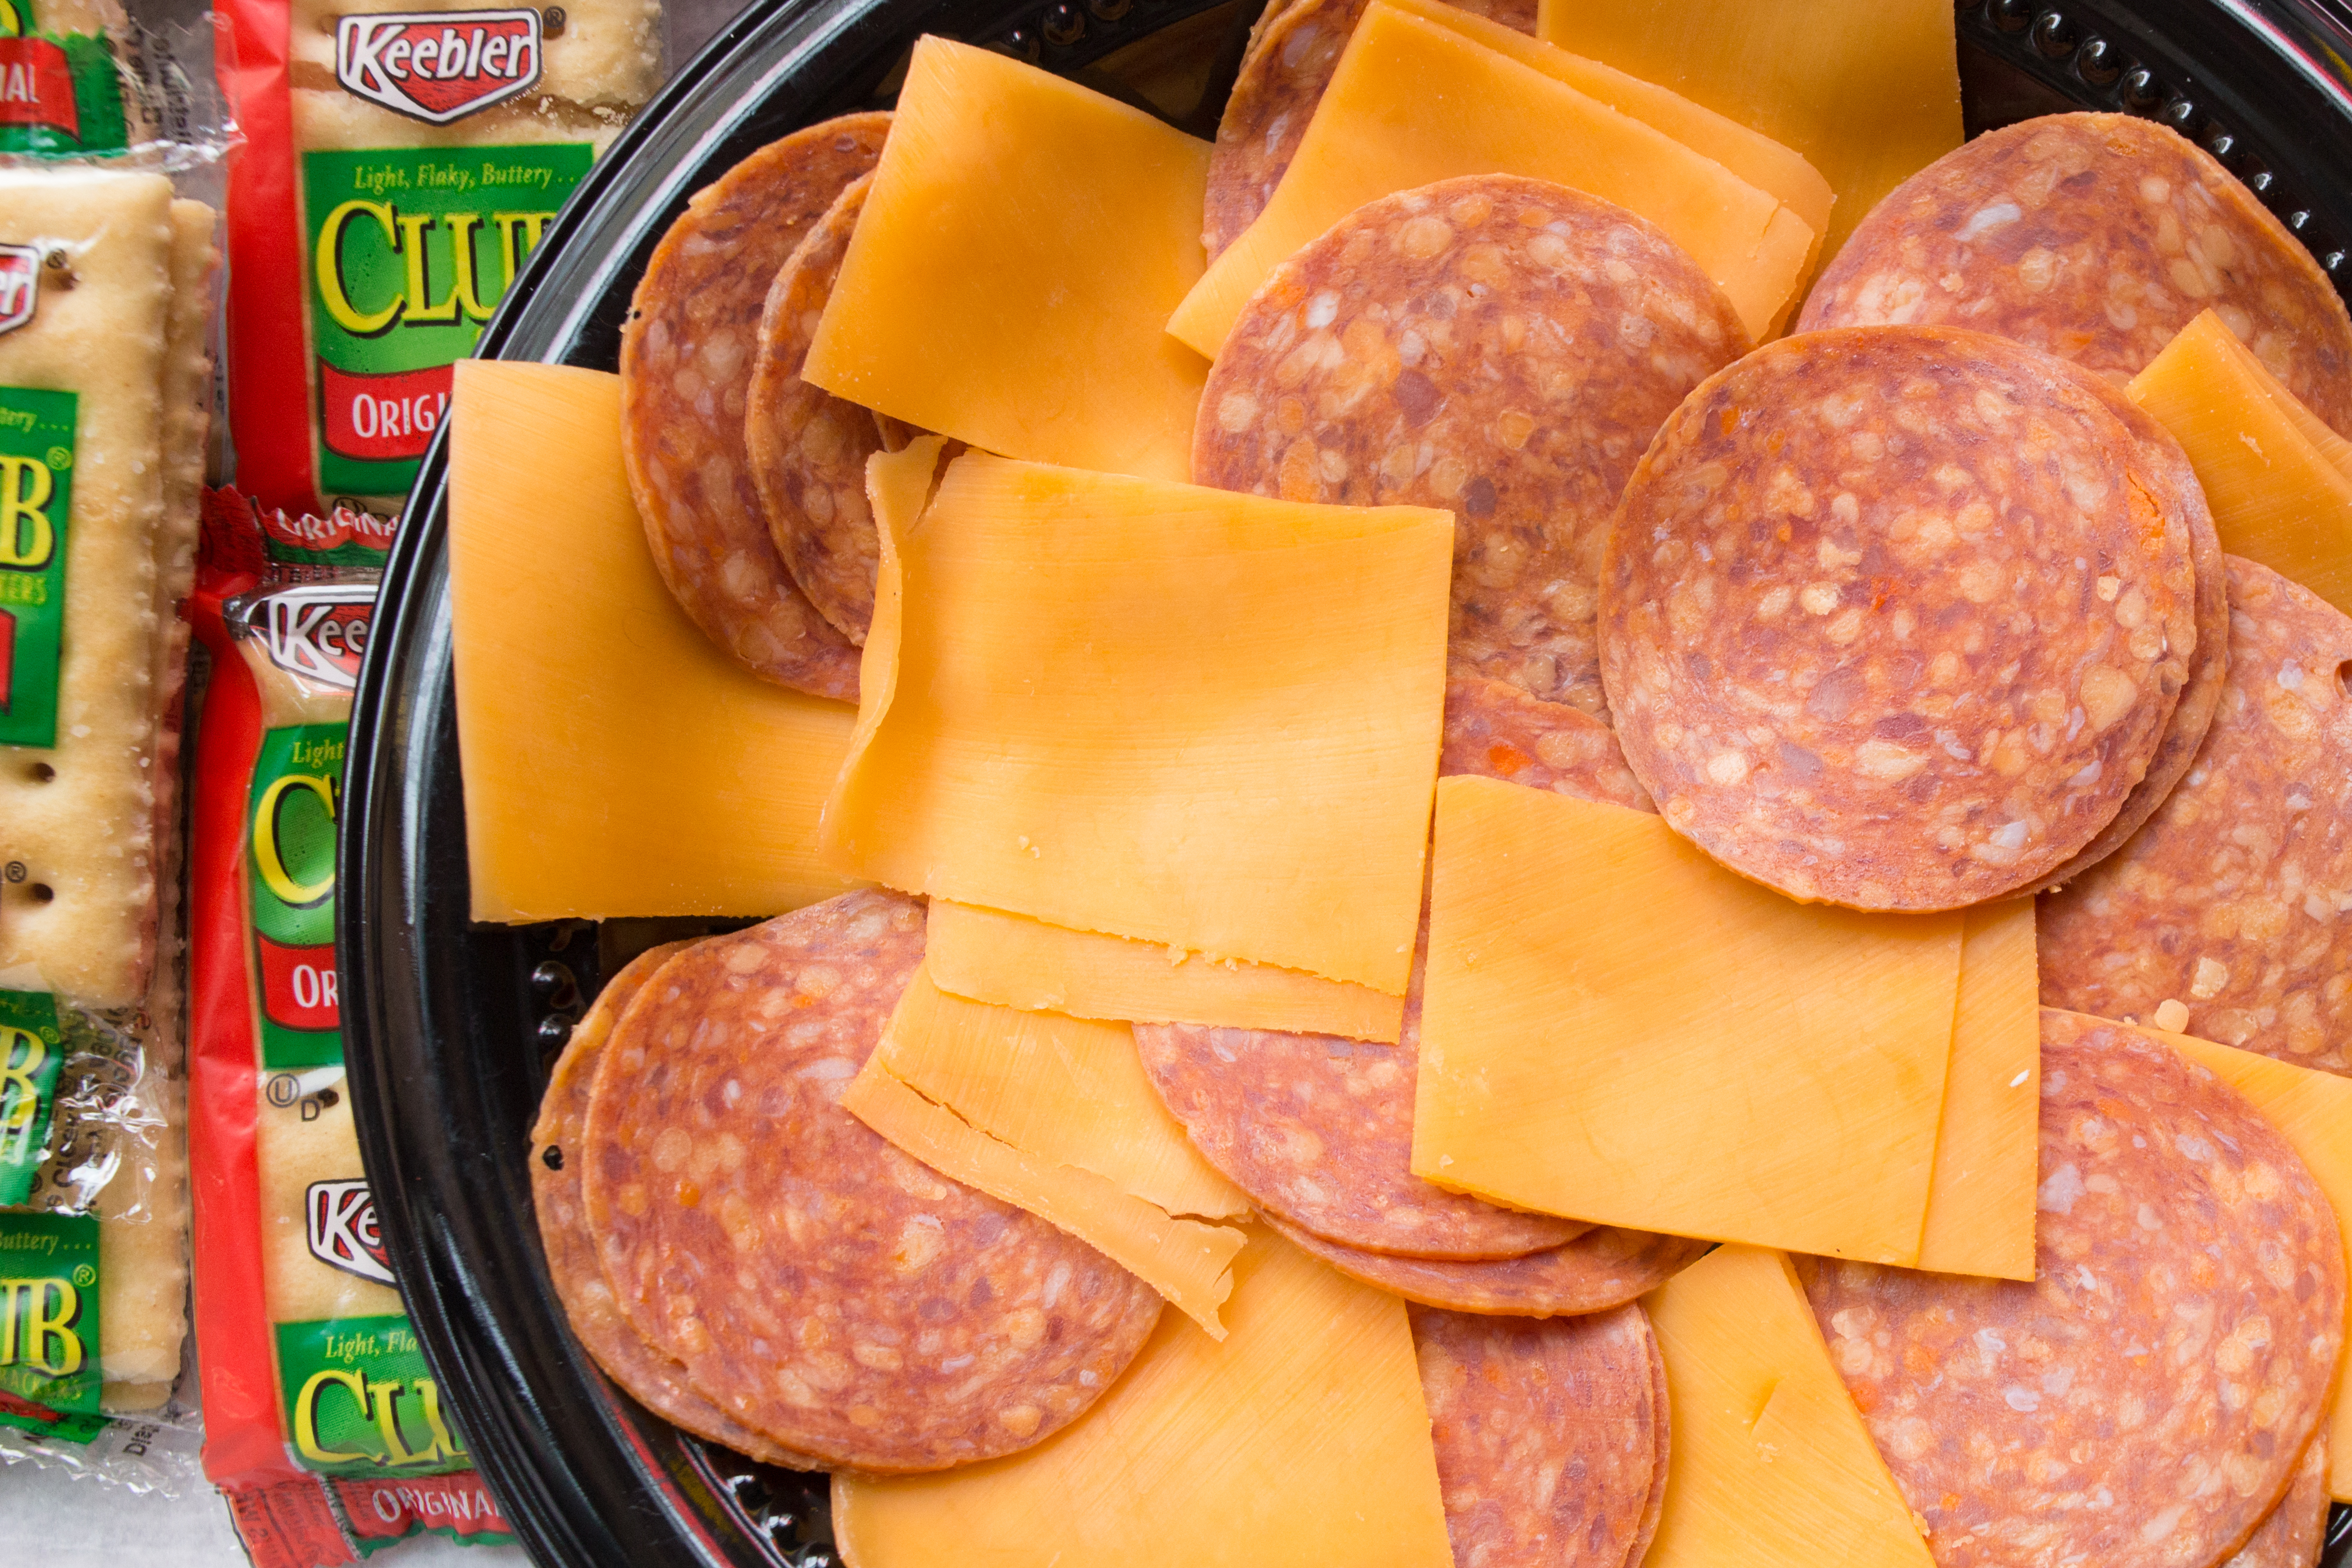 Pepperoni and cheese plate / Image: Catherine Viox // Published: 11.29.17